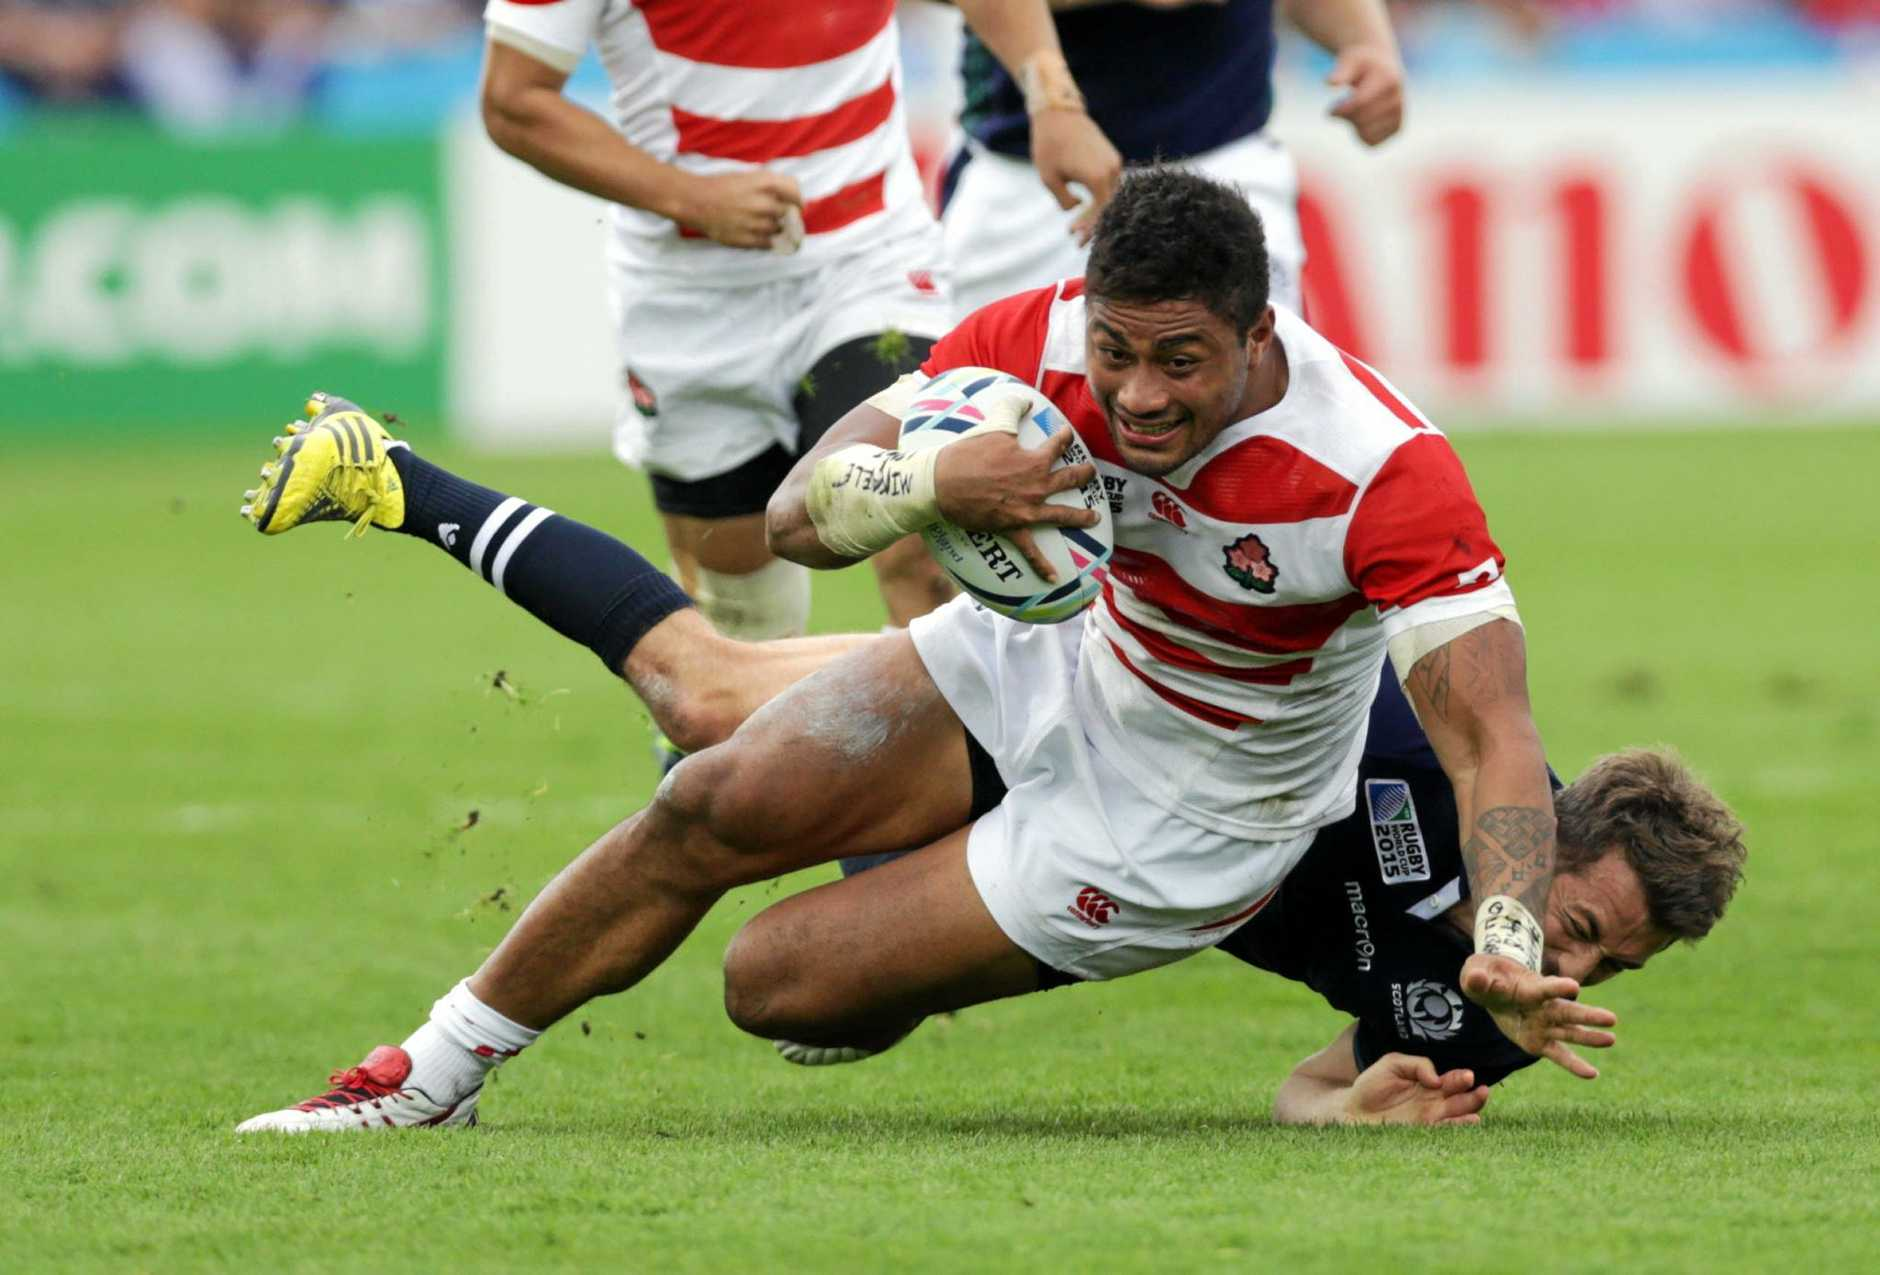 Japan's Amanaki Mafi will make his debut for the Rebels.